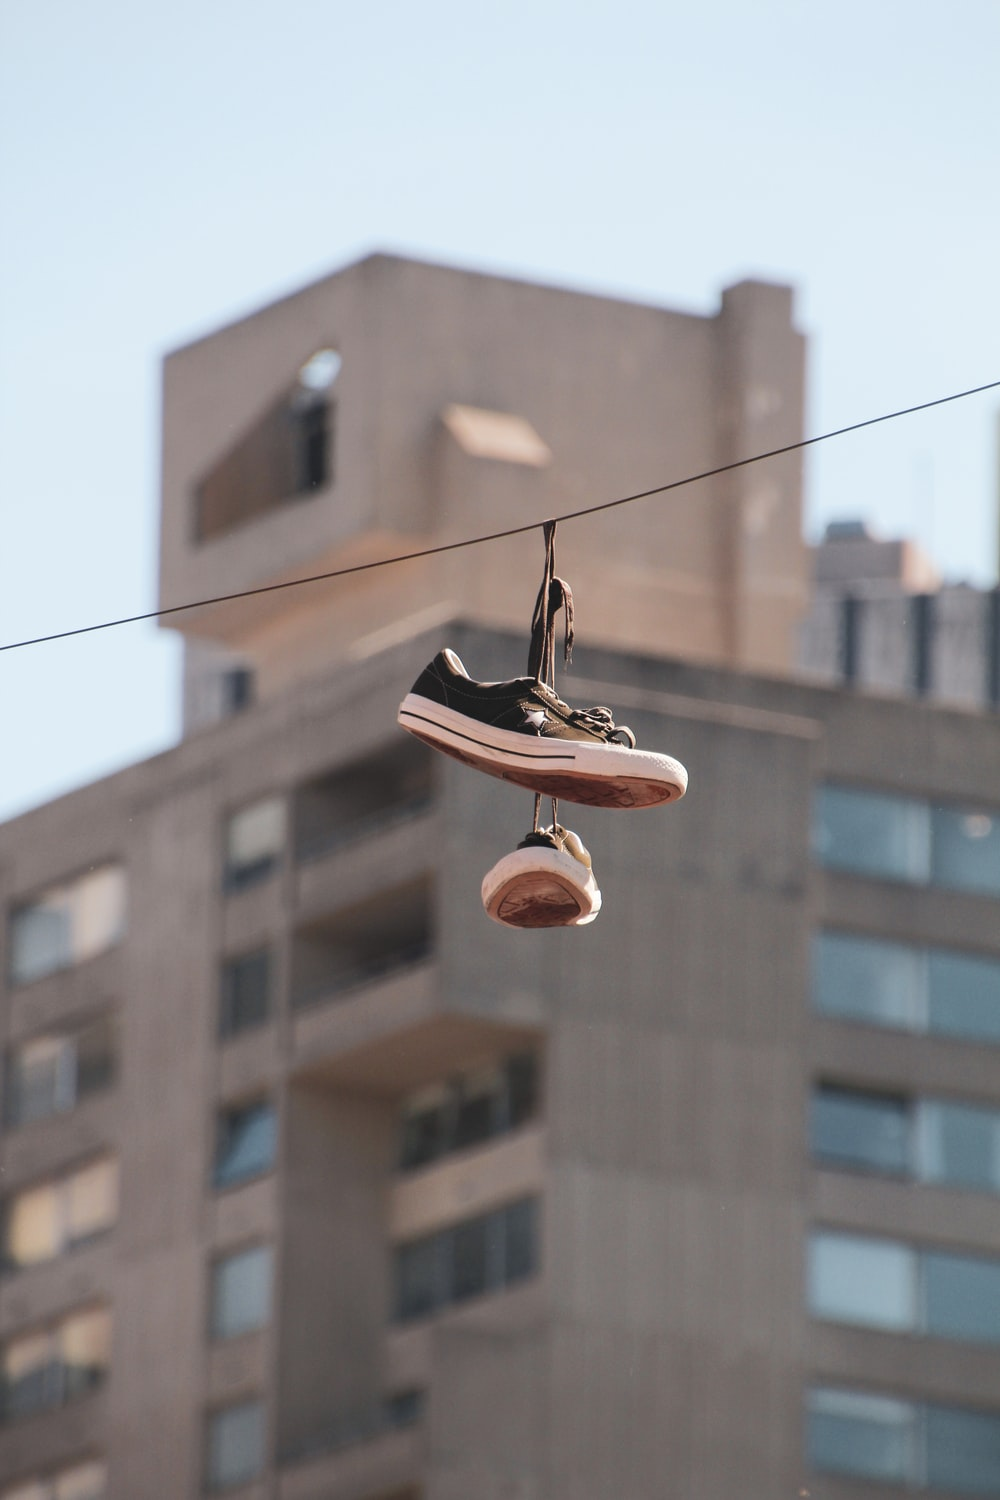 shoes hanging on clothesline